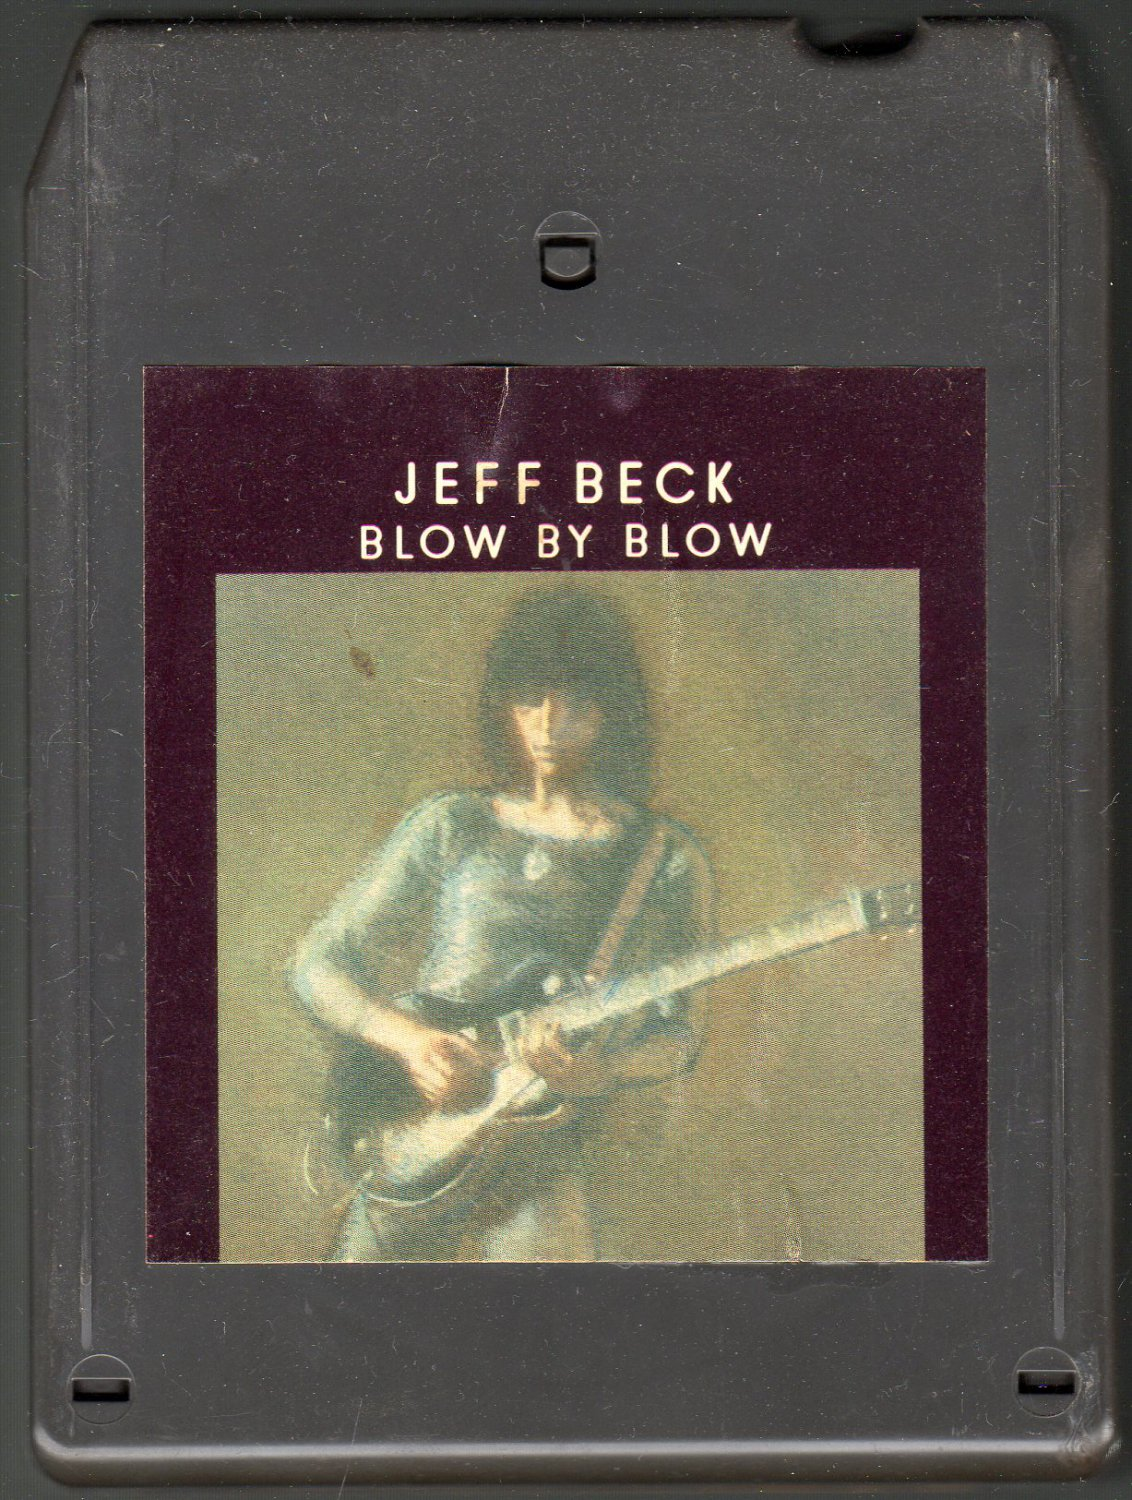 Jeff Beck - Blow By Blow 8-track tape